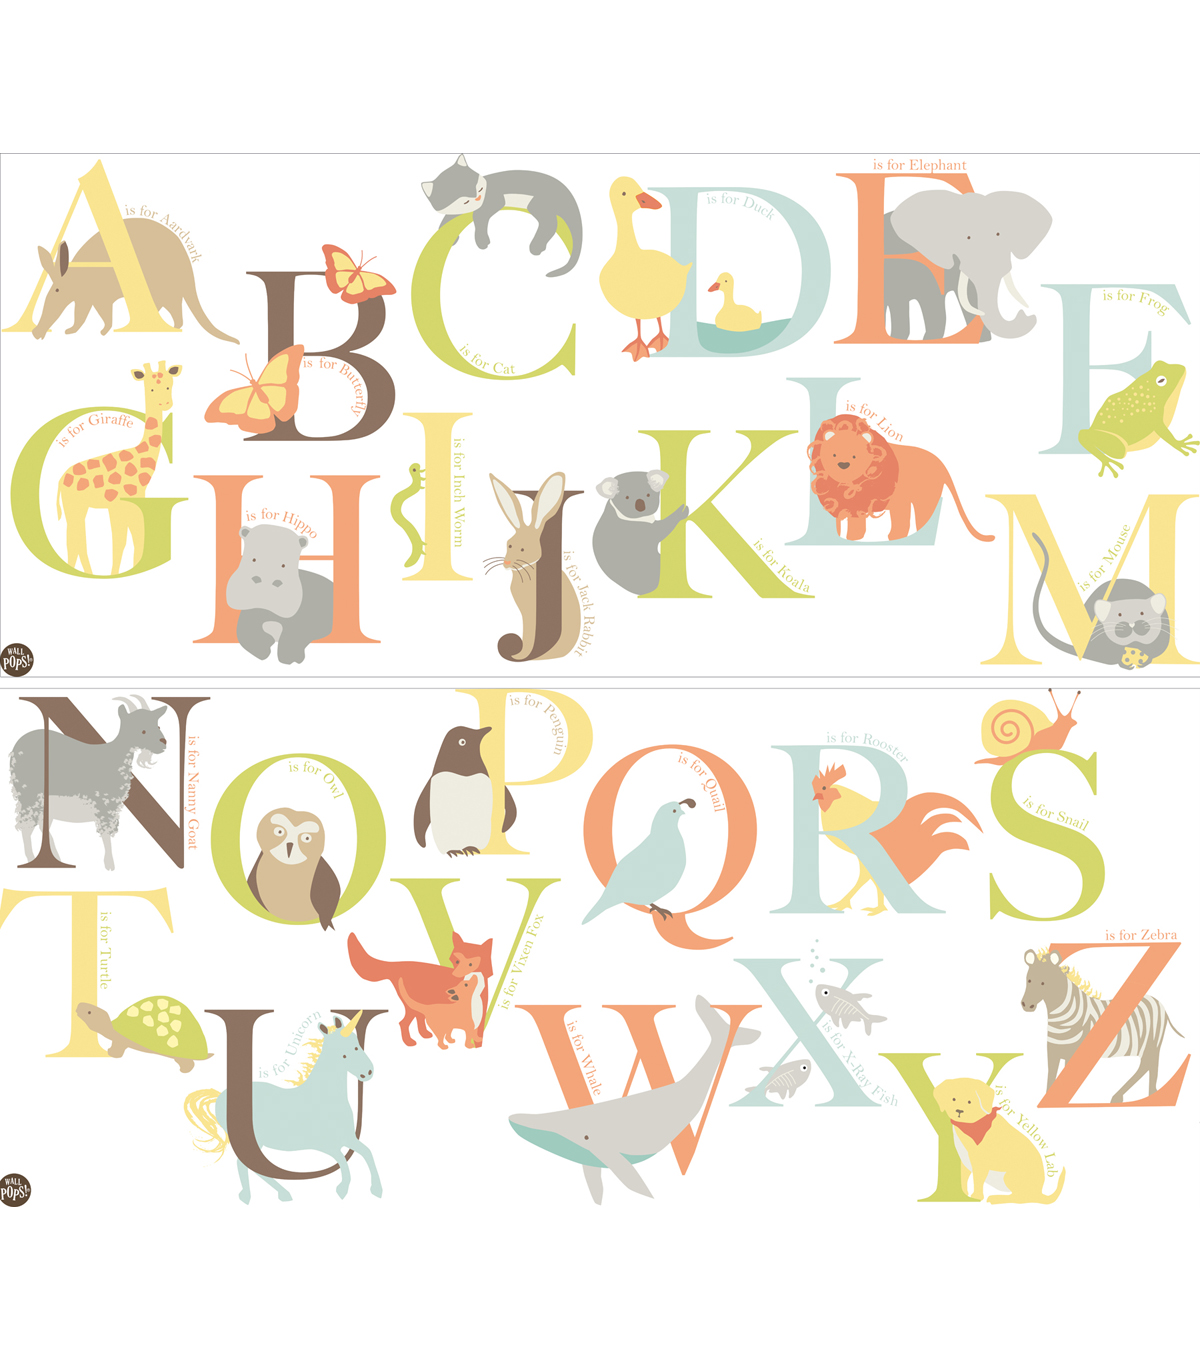 Wall Pops Alphabet Zoo Wall Art Decal Kit, 26 Piece Set